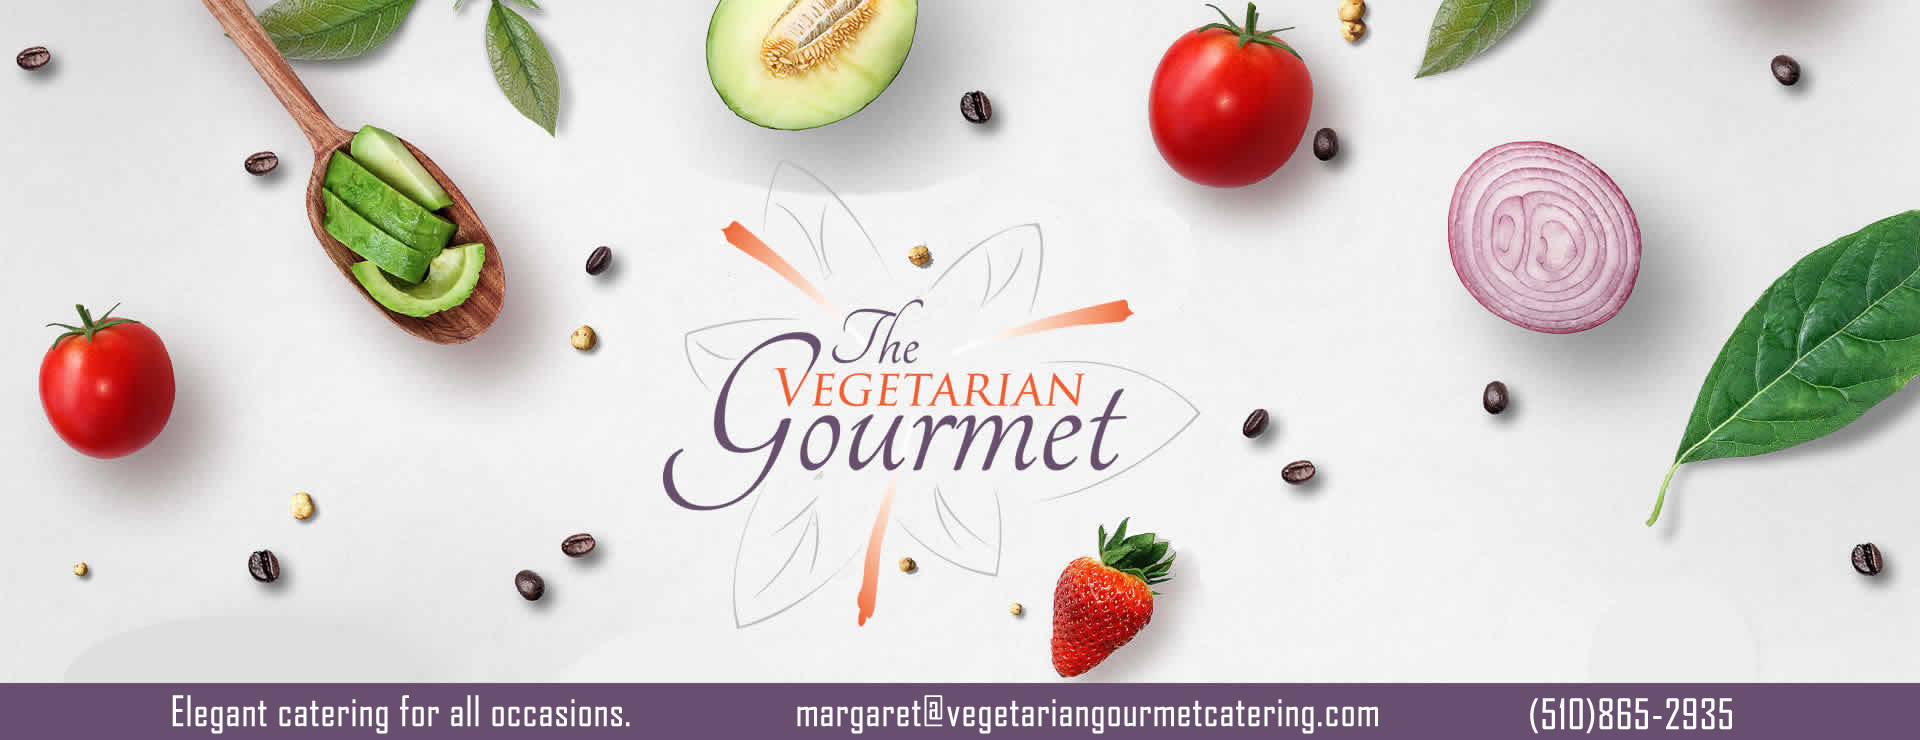 The Vegetarian Gourmet Catering. Elegant catering for all occasions.